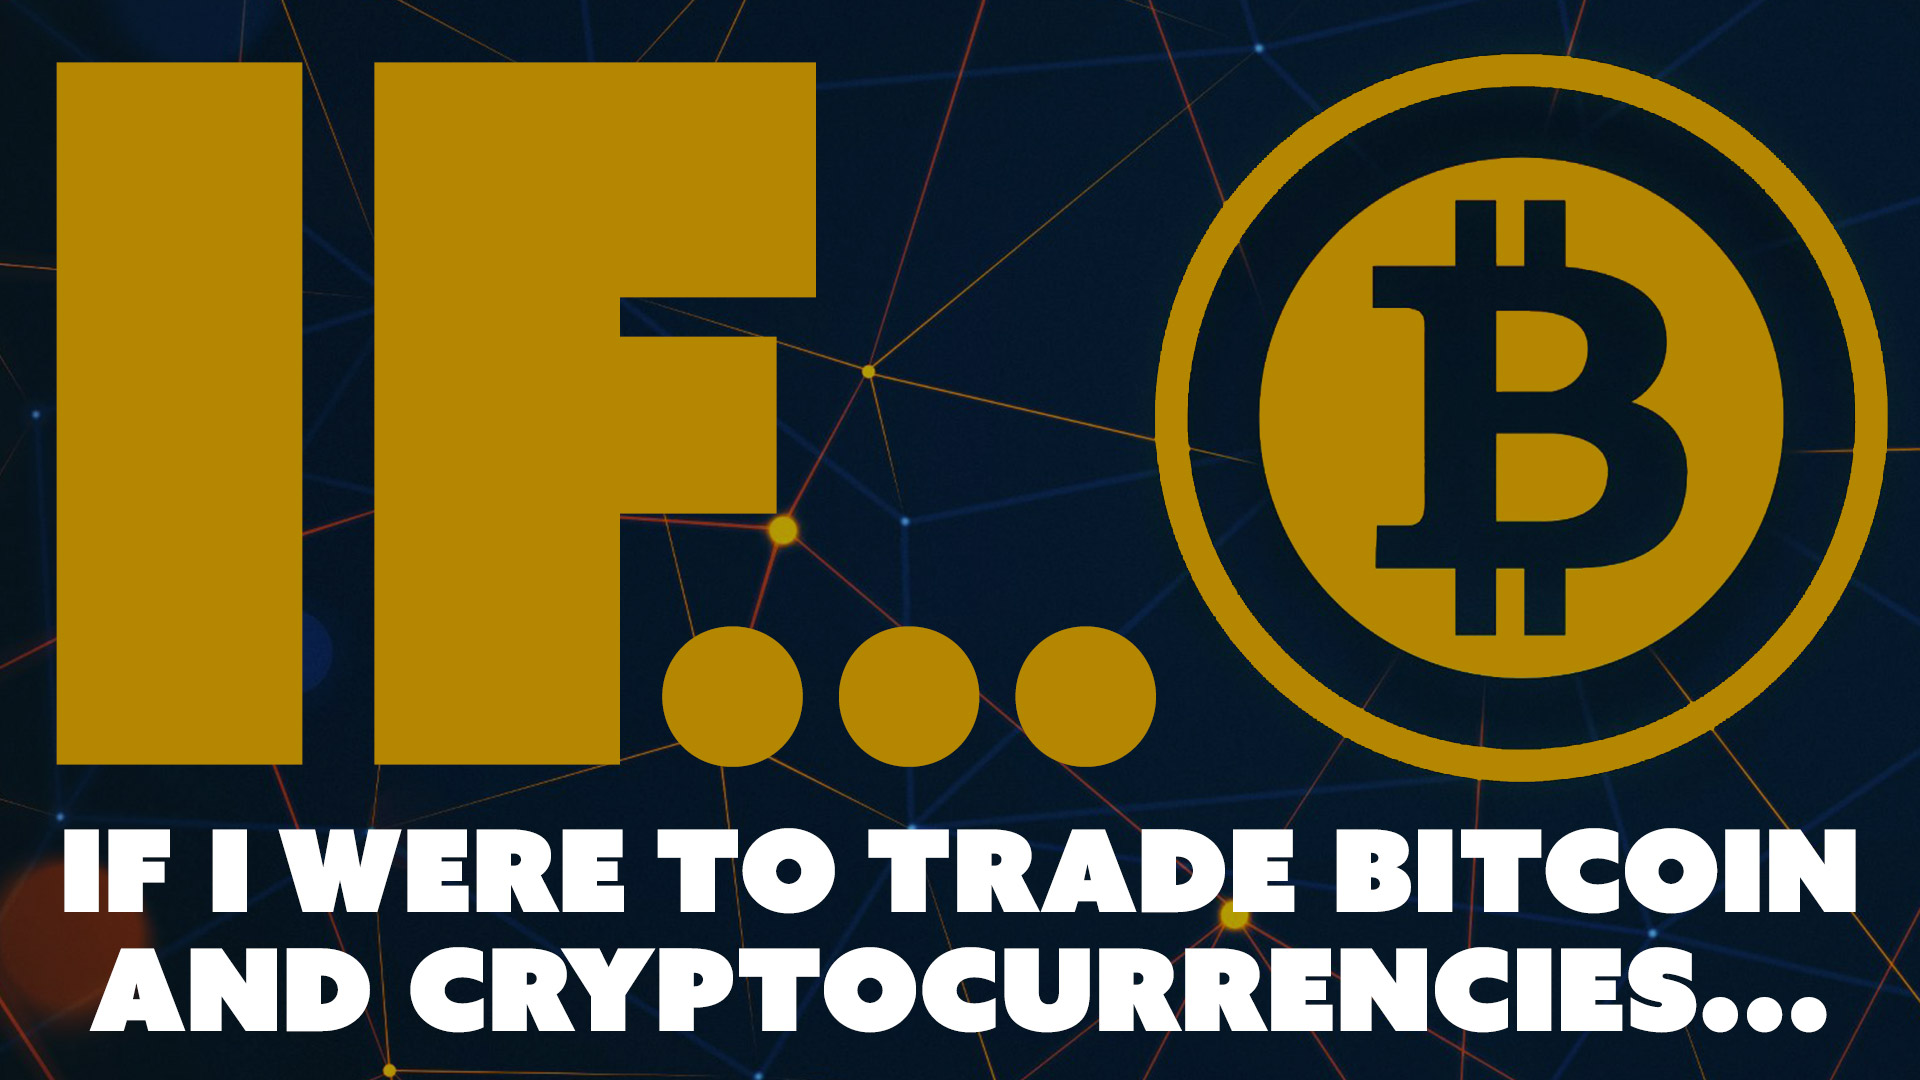 If I Were to Trade Bitcoin and Cryptocurrencies...